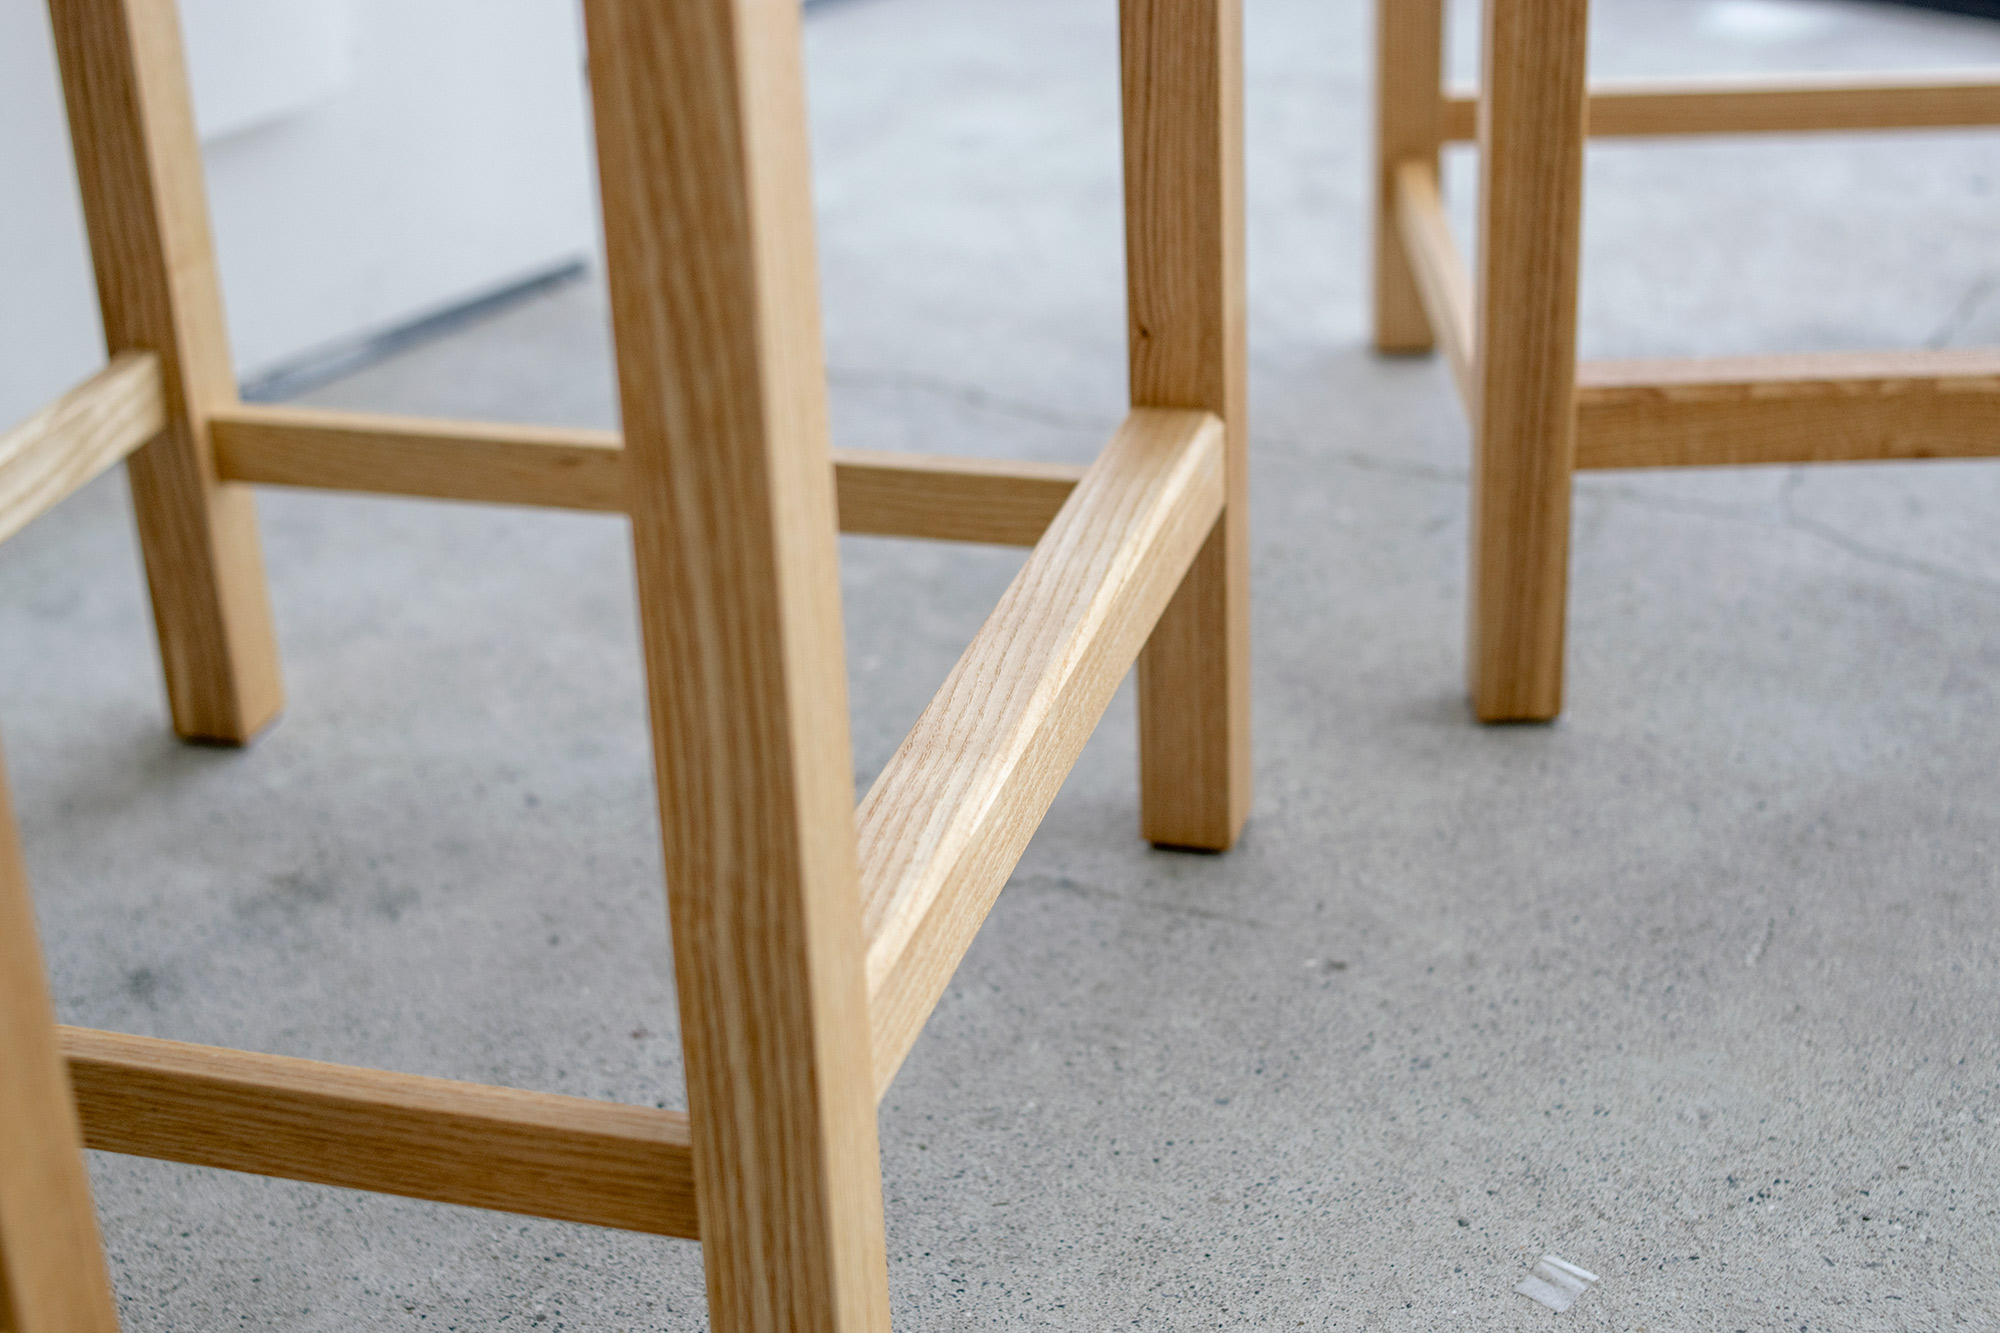 Hight type pico chair